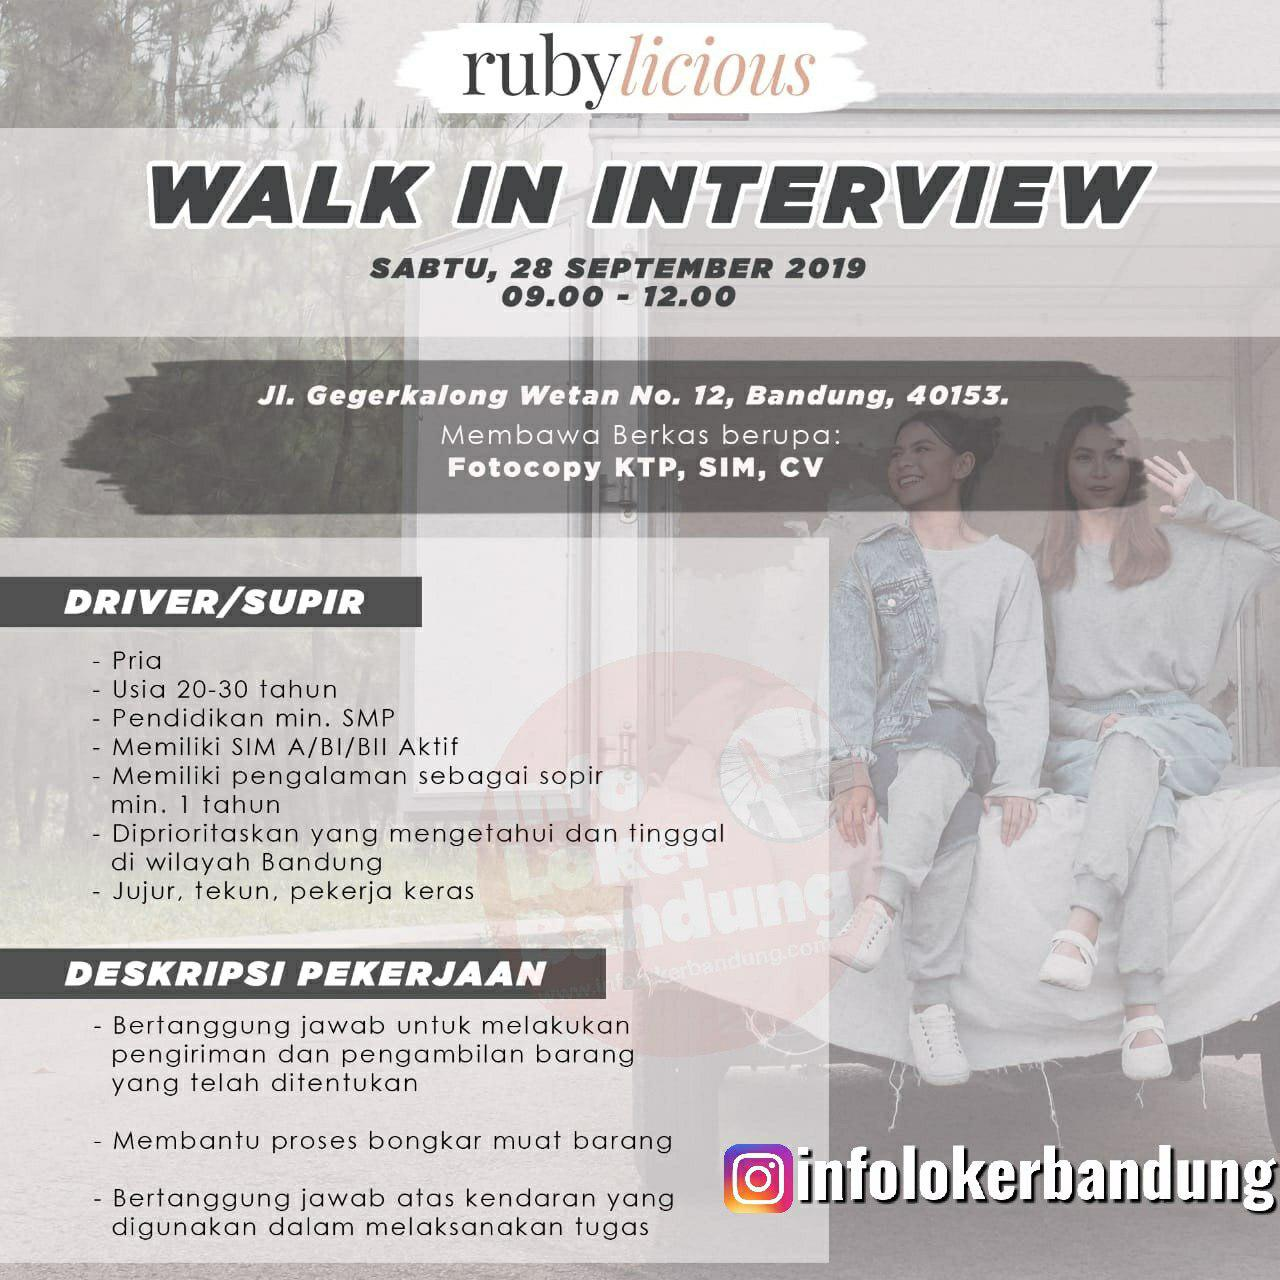 Walk In Interview Rubylicious Bandung 28 September 2019